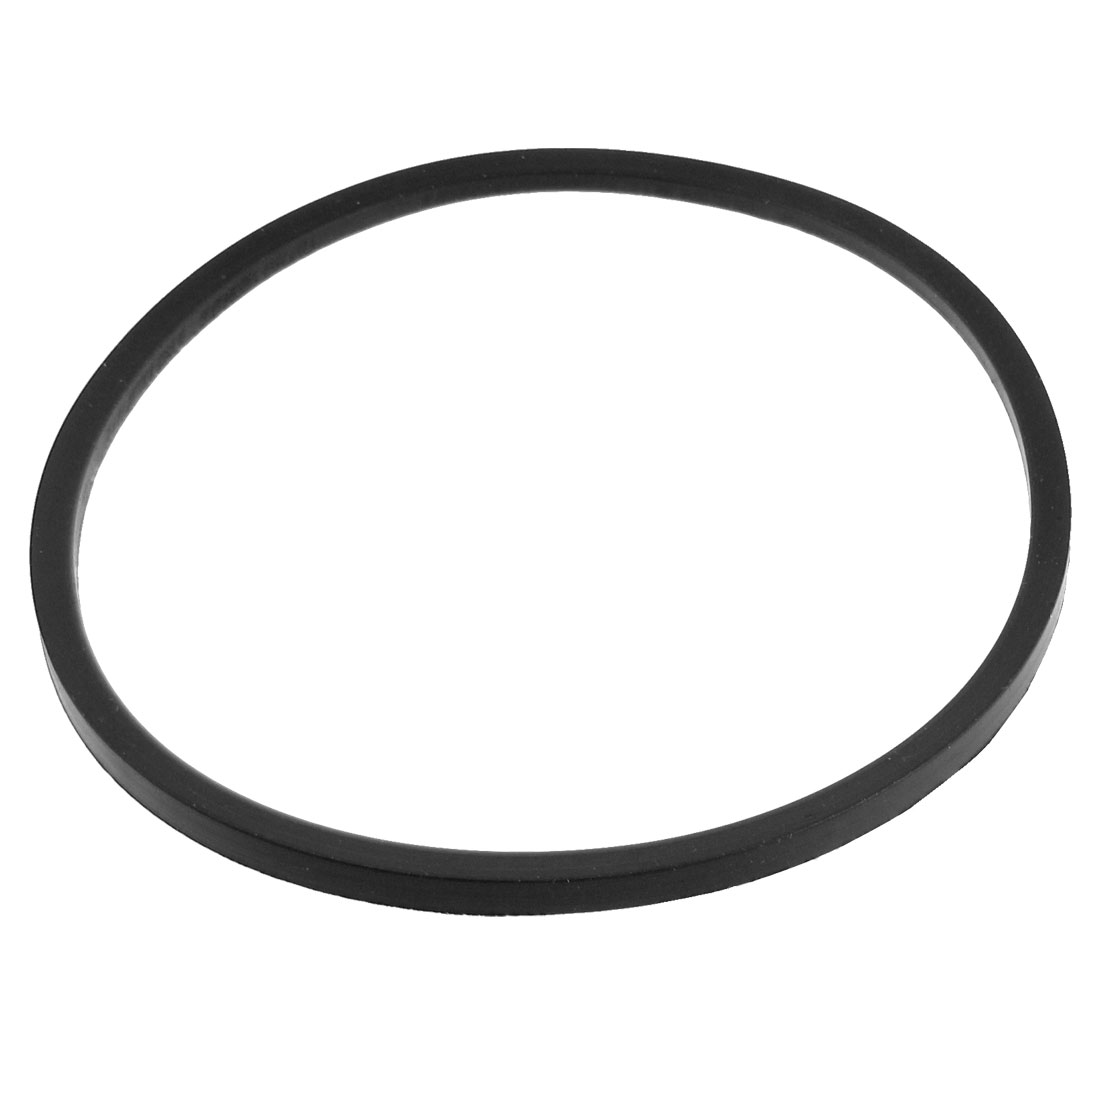 120mm x 110mm x 5mm Black Rubber Seal Ring Gasket for Sealing Machine